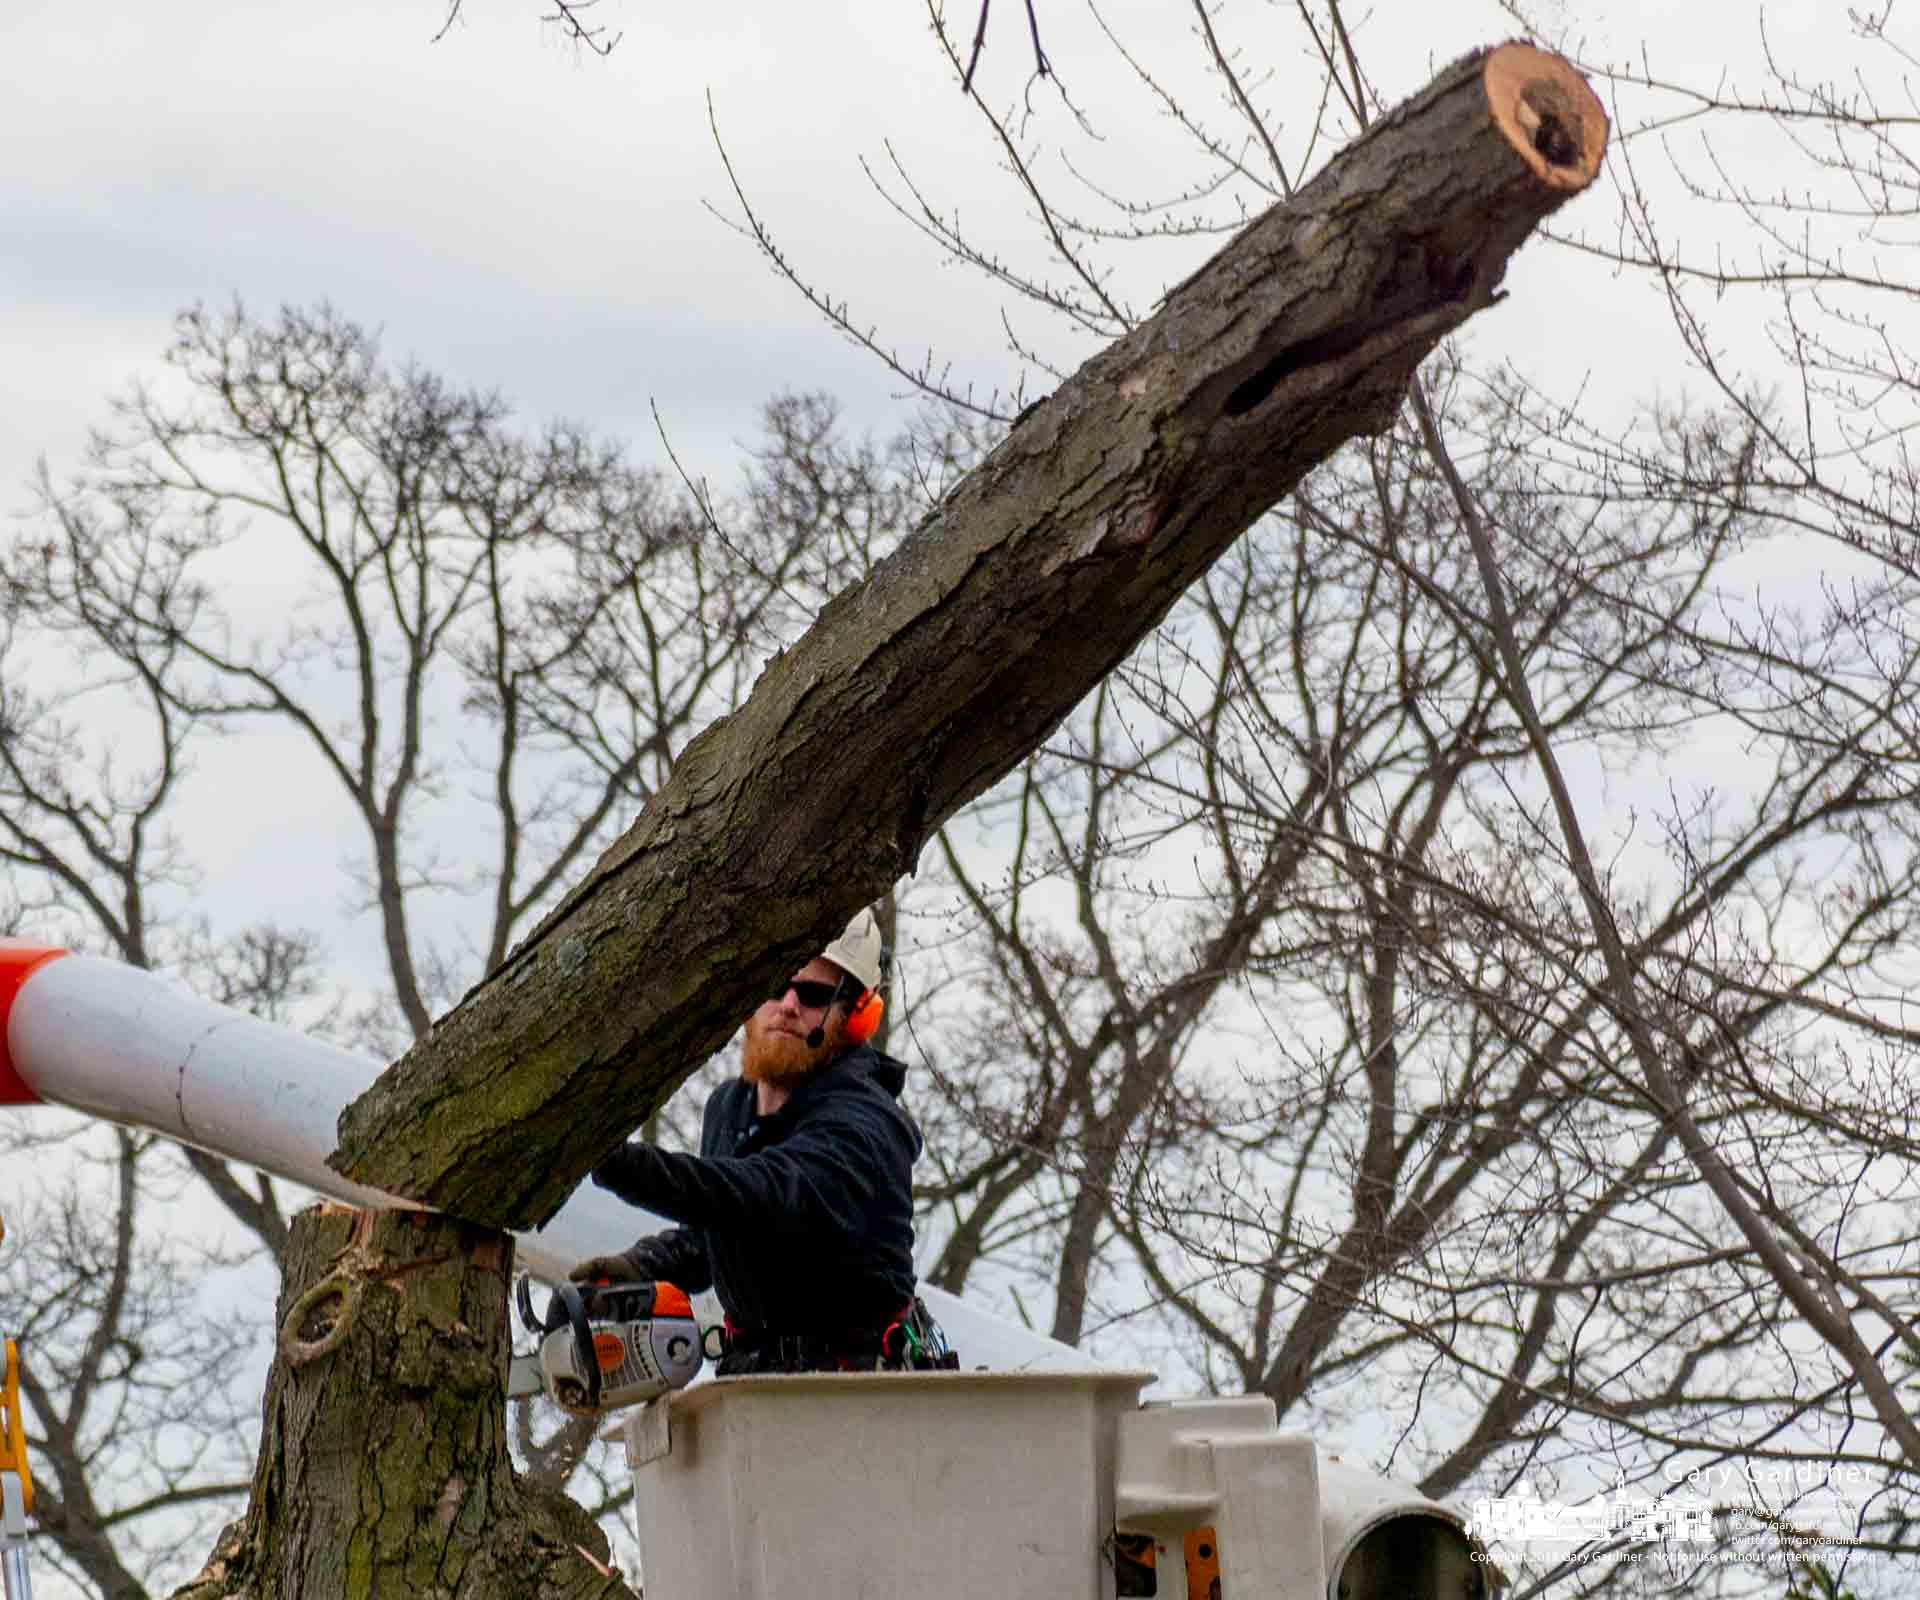 A tree trimmer watches a felled section of tree fall to the ground during tree removal on the Otterbein campus during winter break. My Final Photo for Dec. 27, 2018.